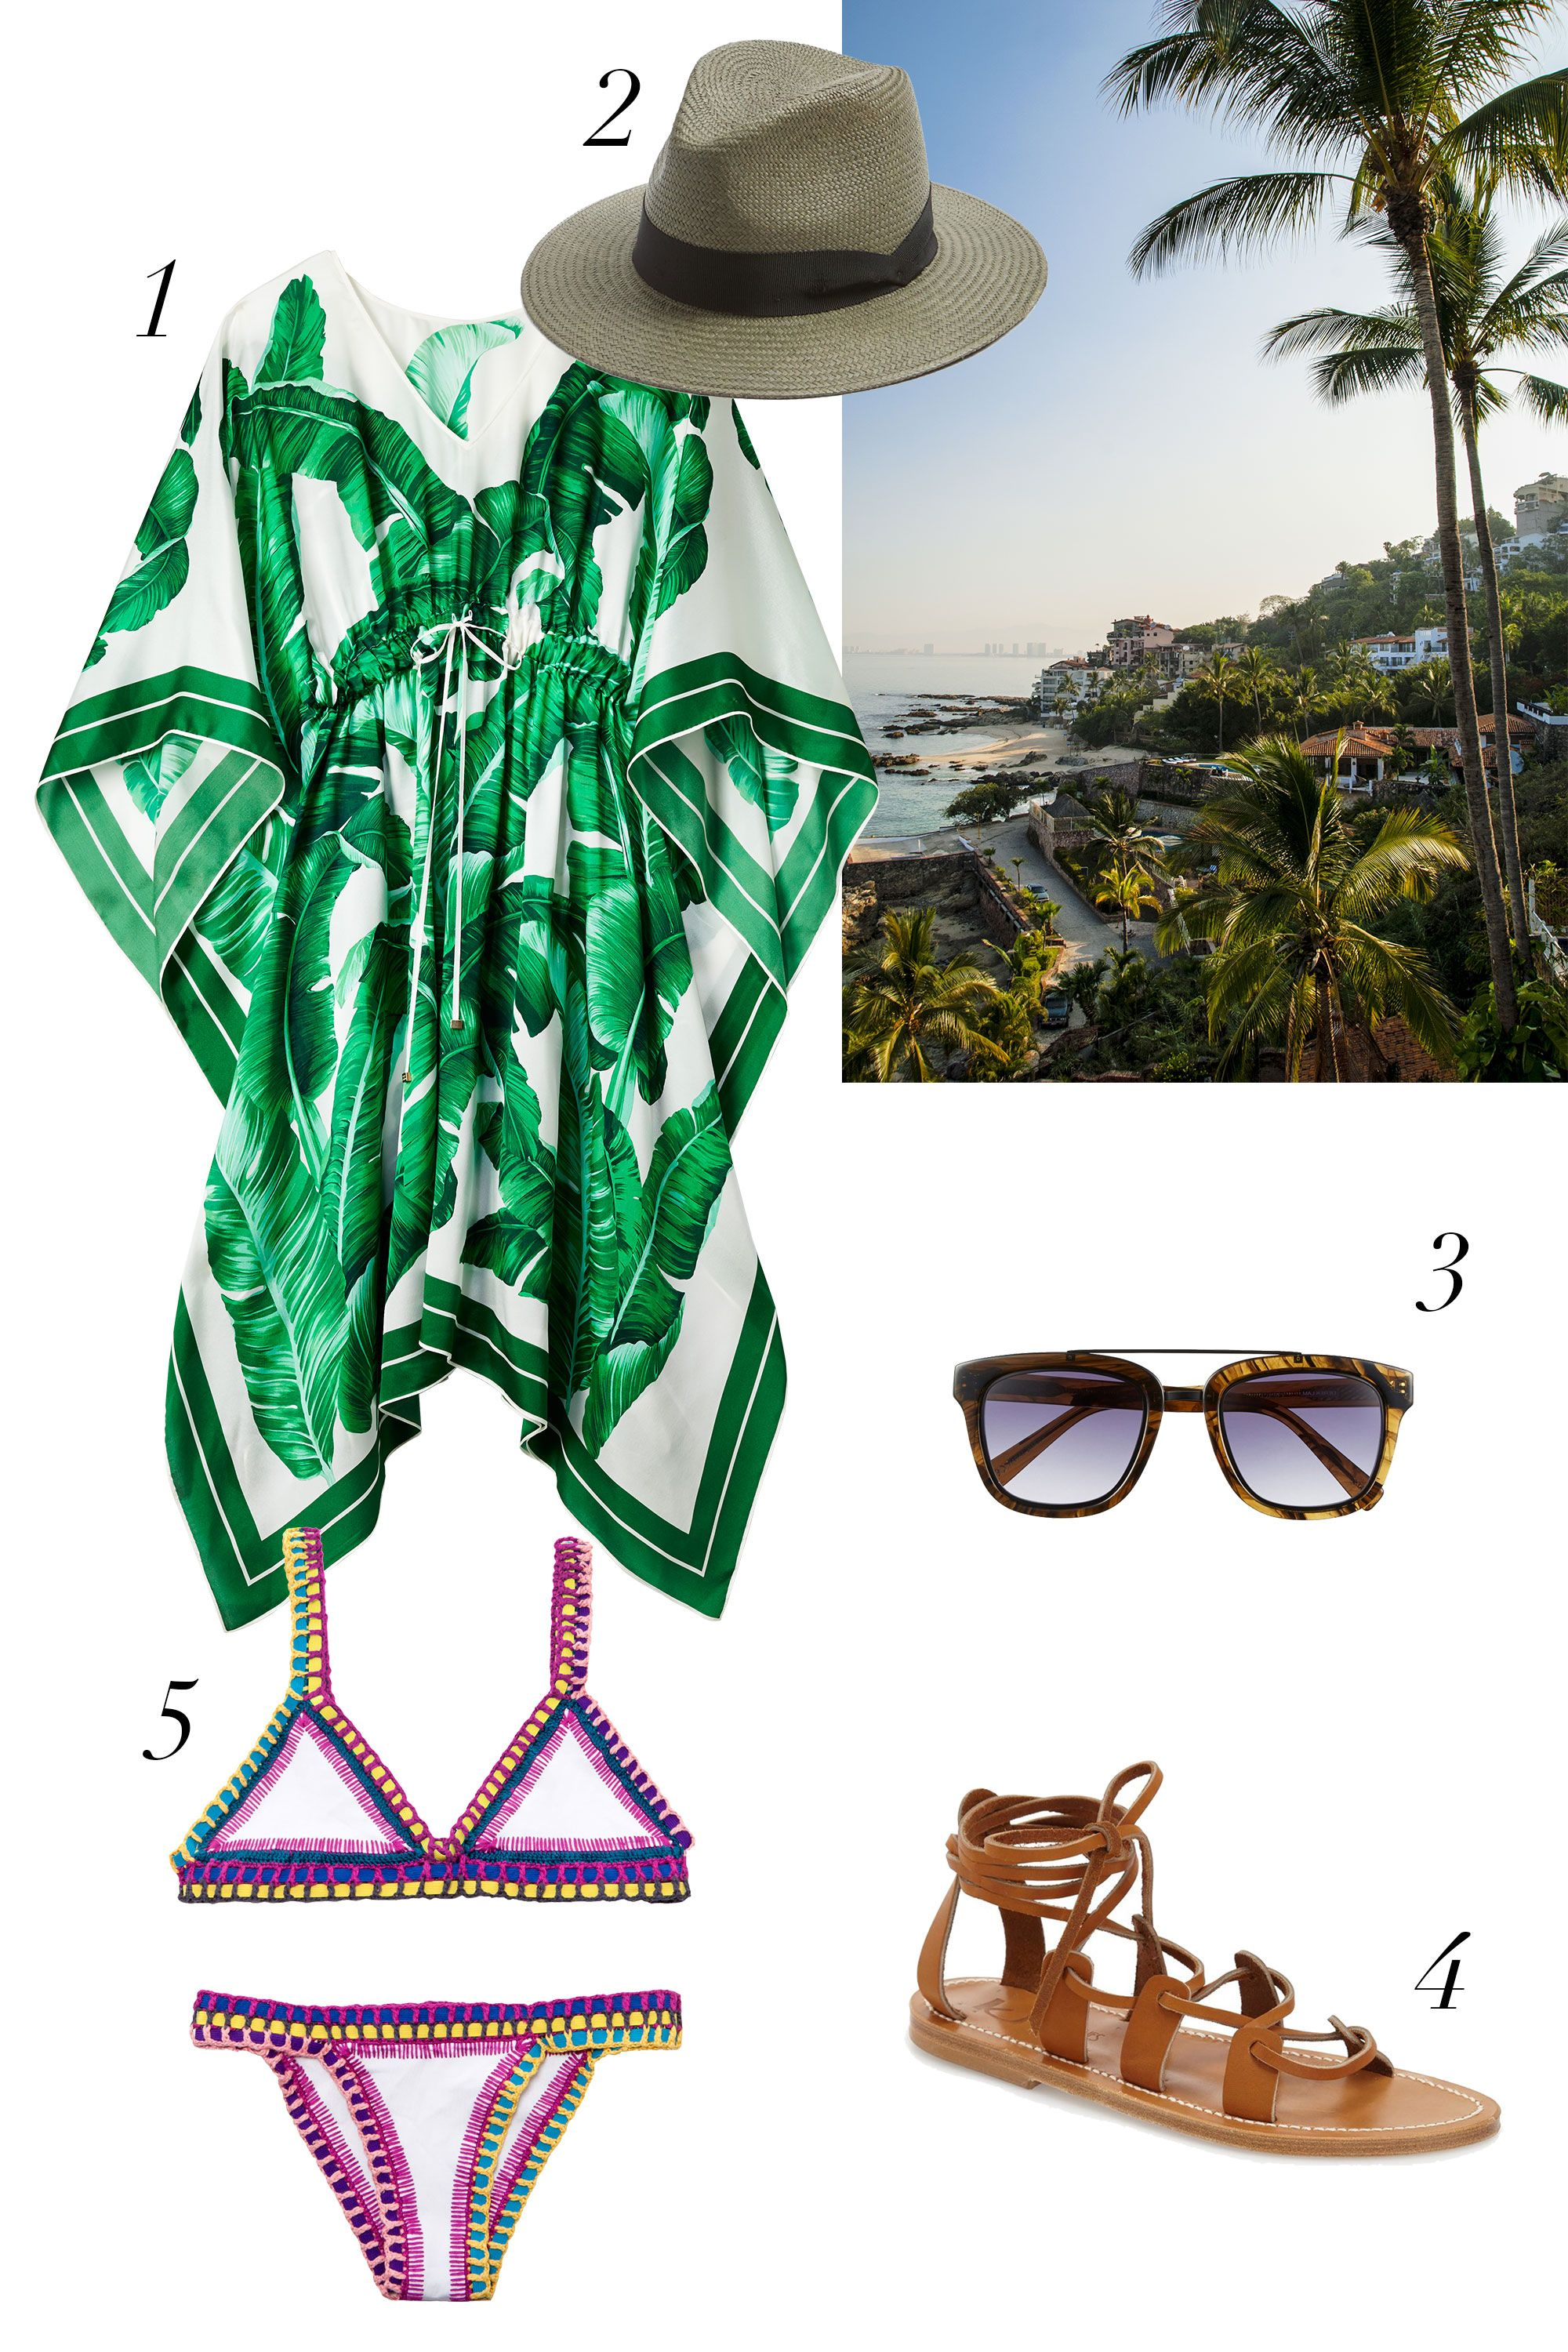 "<p>Because there's a reason every fashion person you follow on Instagram has a feed smattered with Tulum selfies. Pure bohemian bliss...</p> <p><strong data-redactor-tag=""strong"" data-verified=""redactor"">What to Pack:</strong> <em data-verified=""redactor"" data-redactor-tag=""em"">1</em><em data-redactor-tag=""em"" data-verified=""redactor"">.</em> <em data-redactor-tag=""em"" data-verified=""redactor"">Dolce & Gabbana Banana Leaf Print Silk Caftan Dress, $2,145, <a href=""http://shop.nordstrom.com/s/dolcegabbana-banana-leaf-print-silk-caftan-dress/4393870?&cm_mmc=Mindshare_Nordstrom-_-NovemberAcc-_-Hearst-_-proactive"" target=""_blank"" data-tracking-id=""recirc-text-link"">nordstrom.com</a>; 2. <em data-redactor-tag=""em"" data-verified=""redactor"">Rag & Bone Straw Panama Hat, $230, <a href=""http://shop.nordstrom.com/s/rag-bone-straw-panama-hat/4299523?&cm_mmc=Mindshare_Nordstrom-_-NovemberAcc-_-Hearst-_-proactive"" target=""_blank"" data-tracking-id=""recirc-text-link"">nordstrom.com</a>;</em> 3. <em data-redactor-tag=""em"">Derek Lam 'Prince' 50 mm Aviator Sunglasses, $320, </em><a href=""http://shop.nordstrom.com/s/derek-lam-prince-50mm-aviator-sunglasses/4019963?&cm_mmc=Mindshare_Nordstrom-_-NovemberAcc-_-Hearst-_-proactive"" target=""_blank"" data-tracking-id=""recirc-text-link""><em data-redactor-tag=""em"" data-tracking-id=""recirc-text-link"">nordstrom.com</em></a>; 4. <em data-redactor-tag=""em"">K. Jacques St. Tropez Ankle Wrap Sandal, $295, <a href=""http://shop.nordstrom.com/s/k-jacques-flat-sandal/4248255?&cm_mmc=Mindshare_Nordstrom-_-NovemberAcc-_-Hearst-_-proactive"" target=""_blank"" data-tracking-id=""recirc-text-link"">nordstrom.com</a>; </em>5. Kiini 'Yaz' Crochet Trim Bikini Top, $165, and Bikini Bottoms, $120, <a href=""http://shop.nordstrom.com/o/kiini-bikini-top-bottoms/4409285?&cm_mmc=Mindshare_Nordstrom-_-NovemberAcc-_-Hearst-_-proactive"" target=""_blank"" data-tracking-id=""recirc-text-link"">nordstrom.com</a> </em><a href=""http://shop.nordstrom.com/s/derek-lam-prince-50mm-aviator-sunglasses/4019963?origin=category-personalizedsort&fashioncolor=CARAMEL%20STRIPES"" target=""_blank"" data-tracking-id=""recirc-text-link""></a></p>"